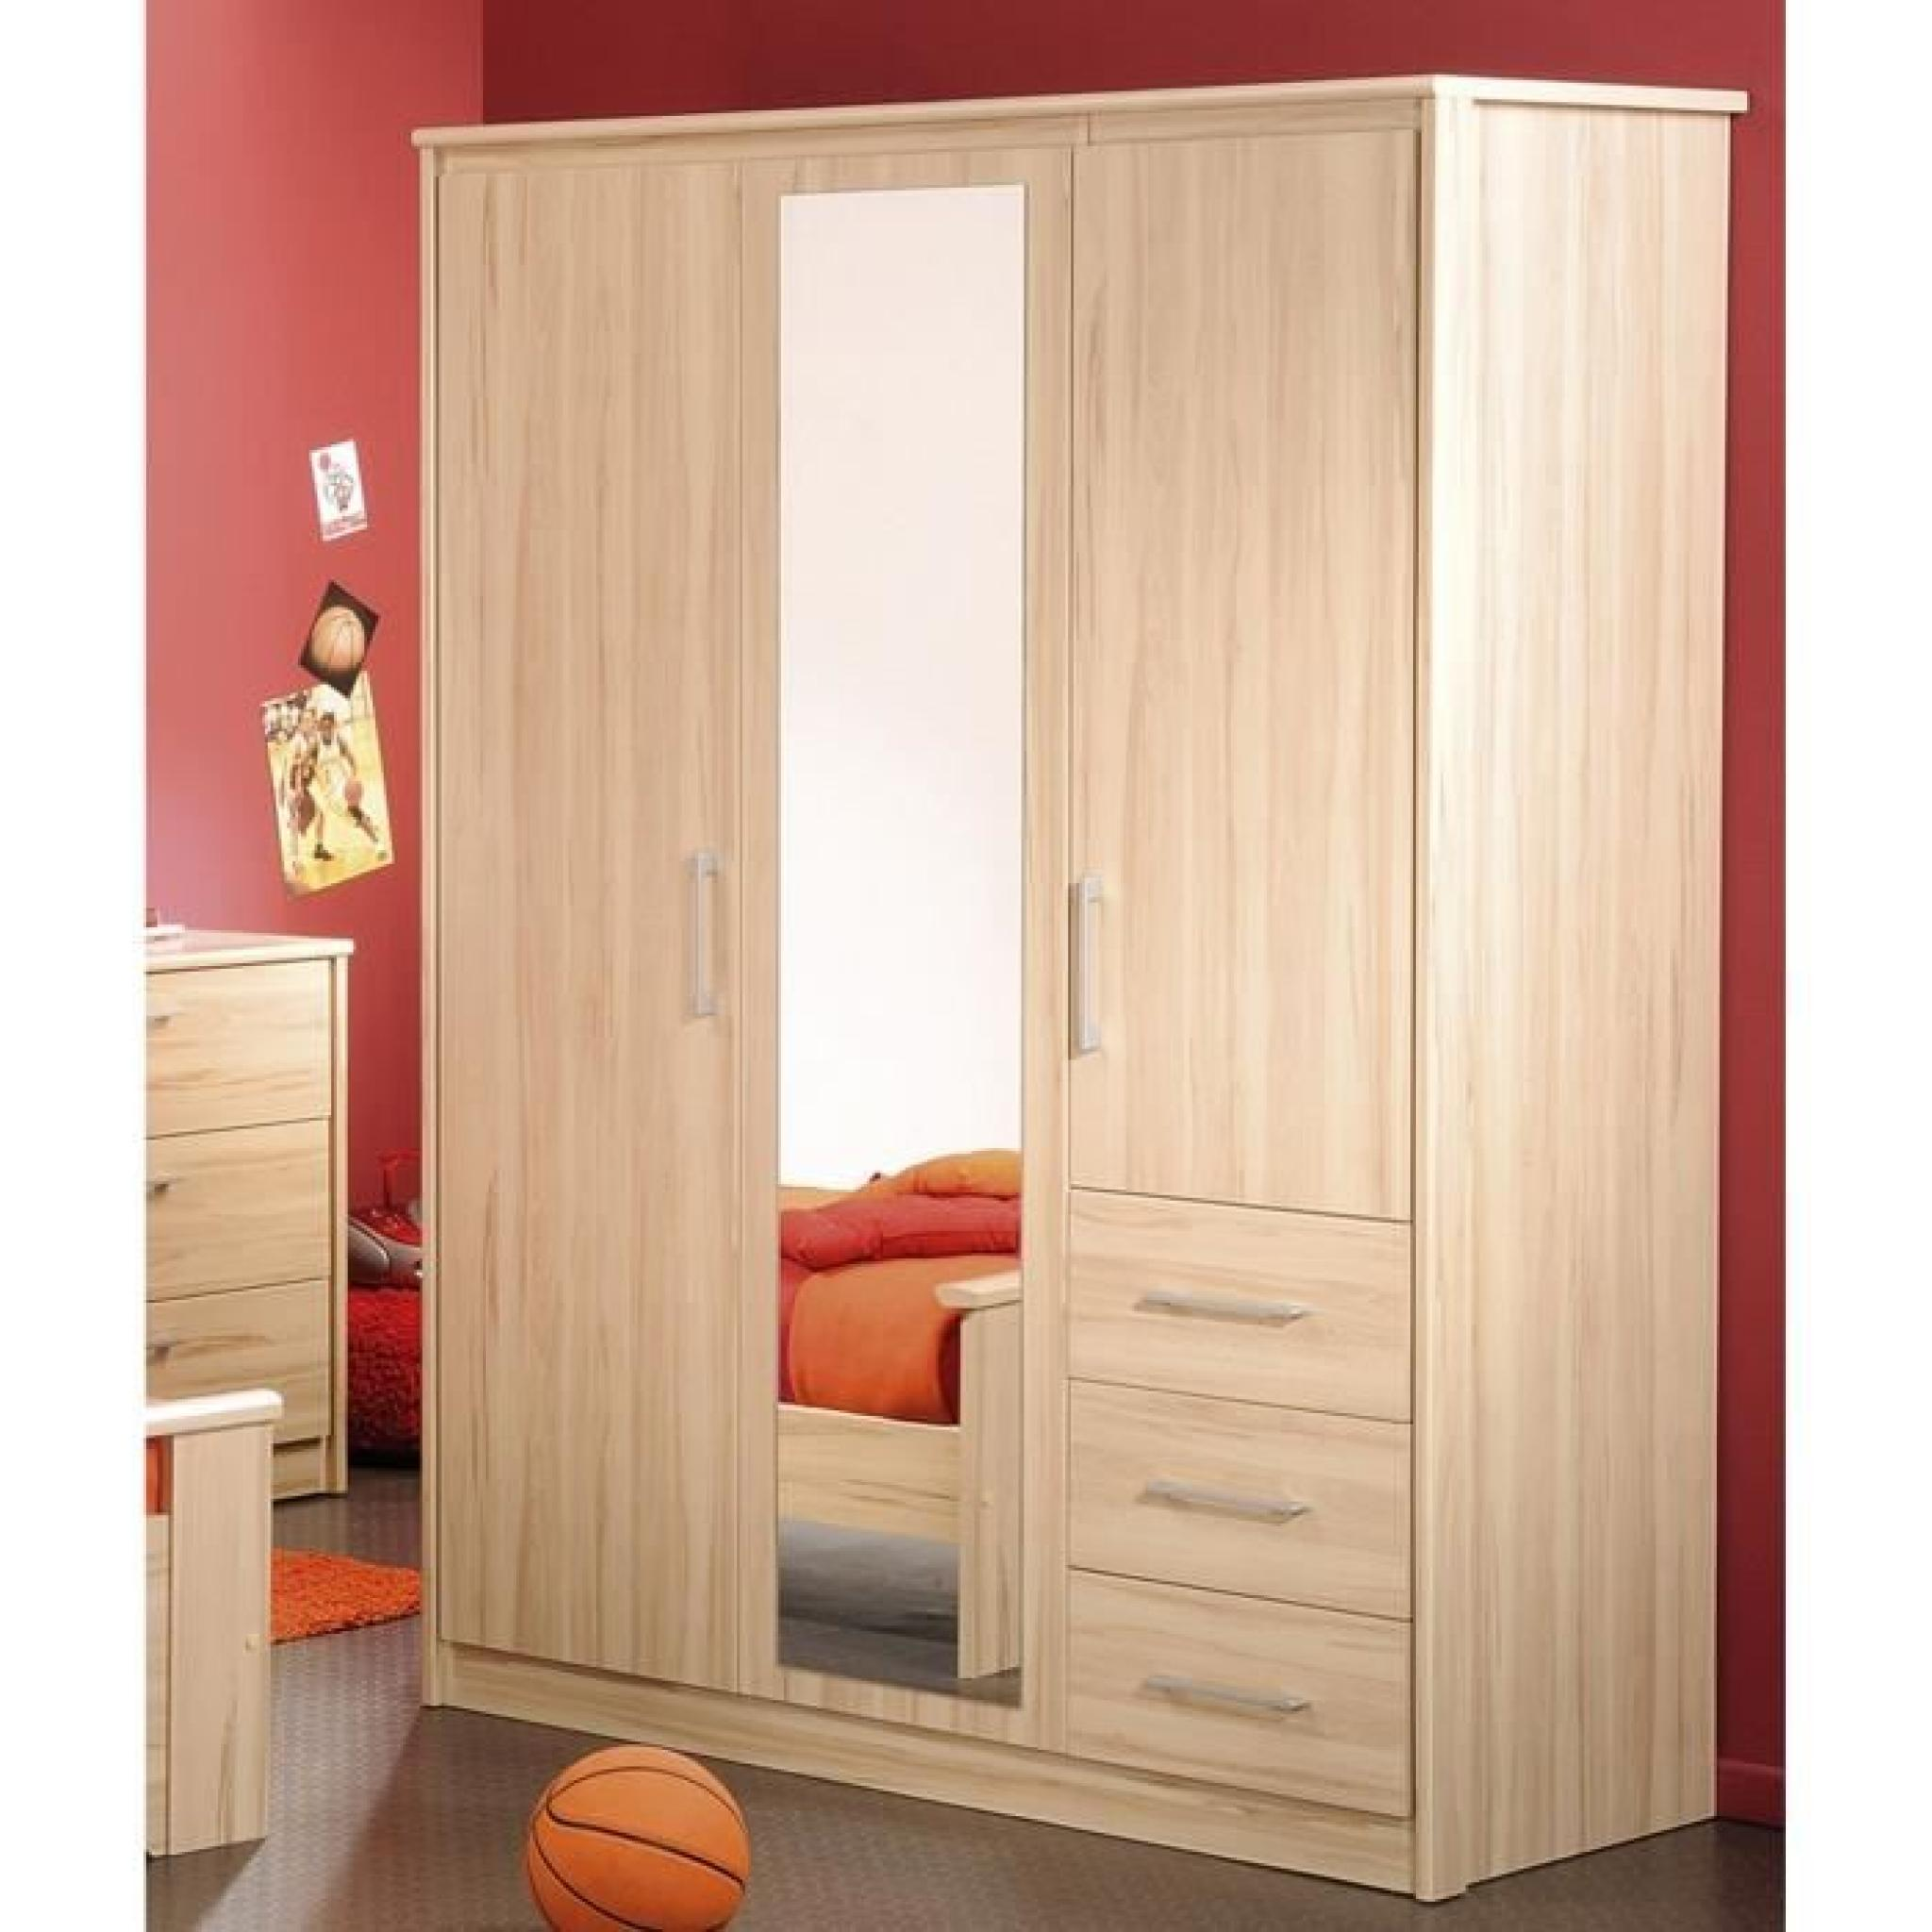 armoire rouge enfant perfect surprenant armoire enfant conforama portes tiroirs atelier rouge. Black Bedroom Furniture Sets. Home Design Ideas